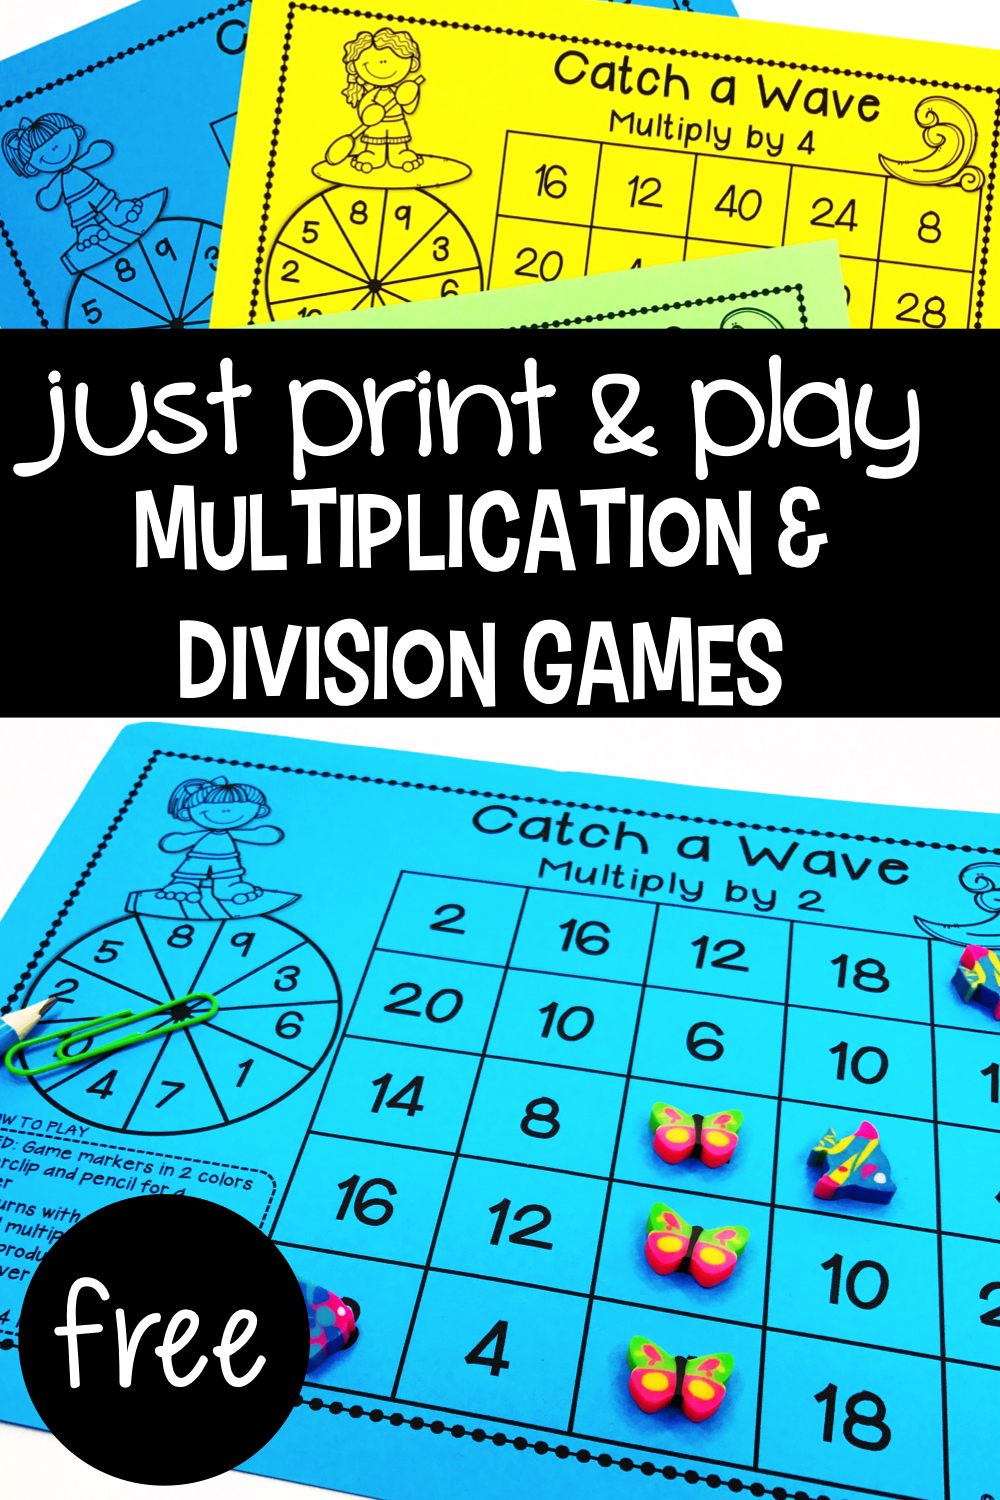 Click Here to Get Free Multiplication & Division Games